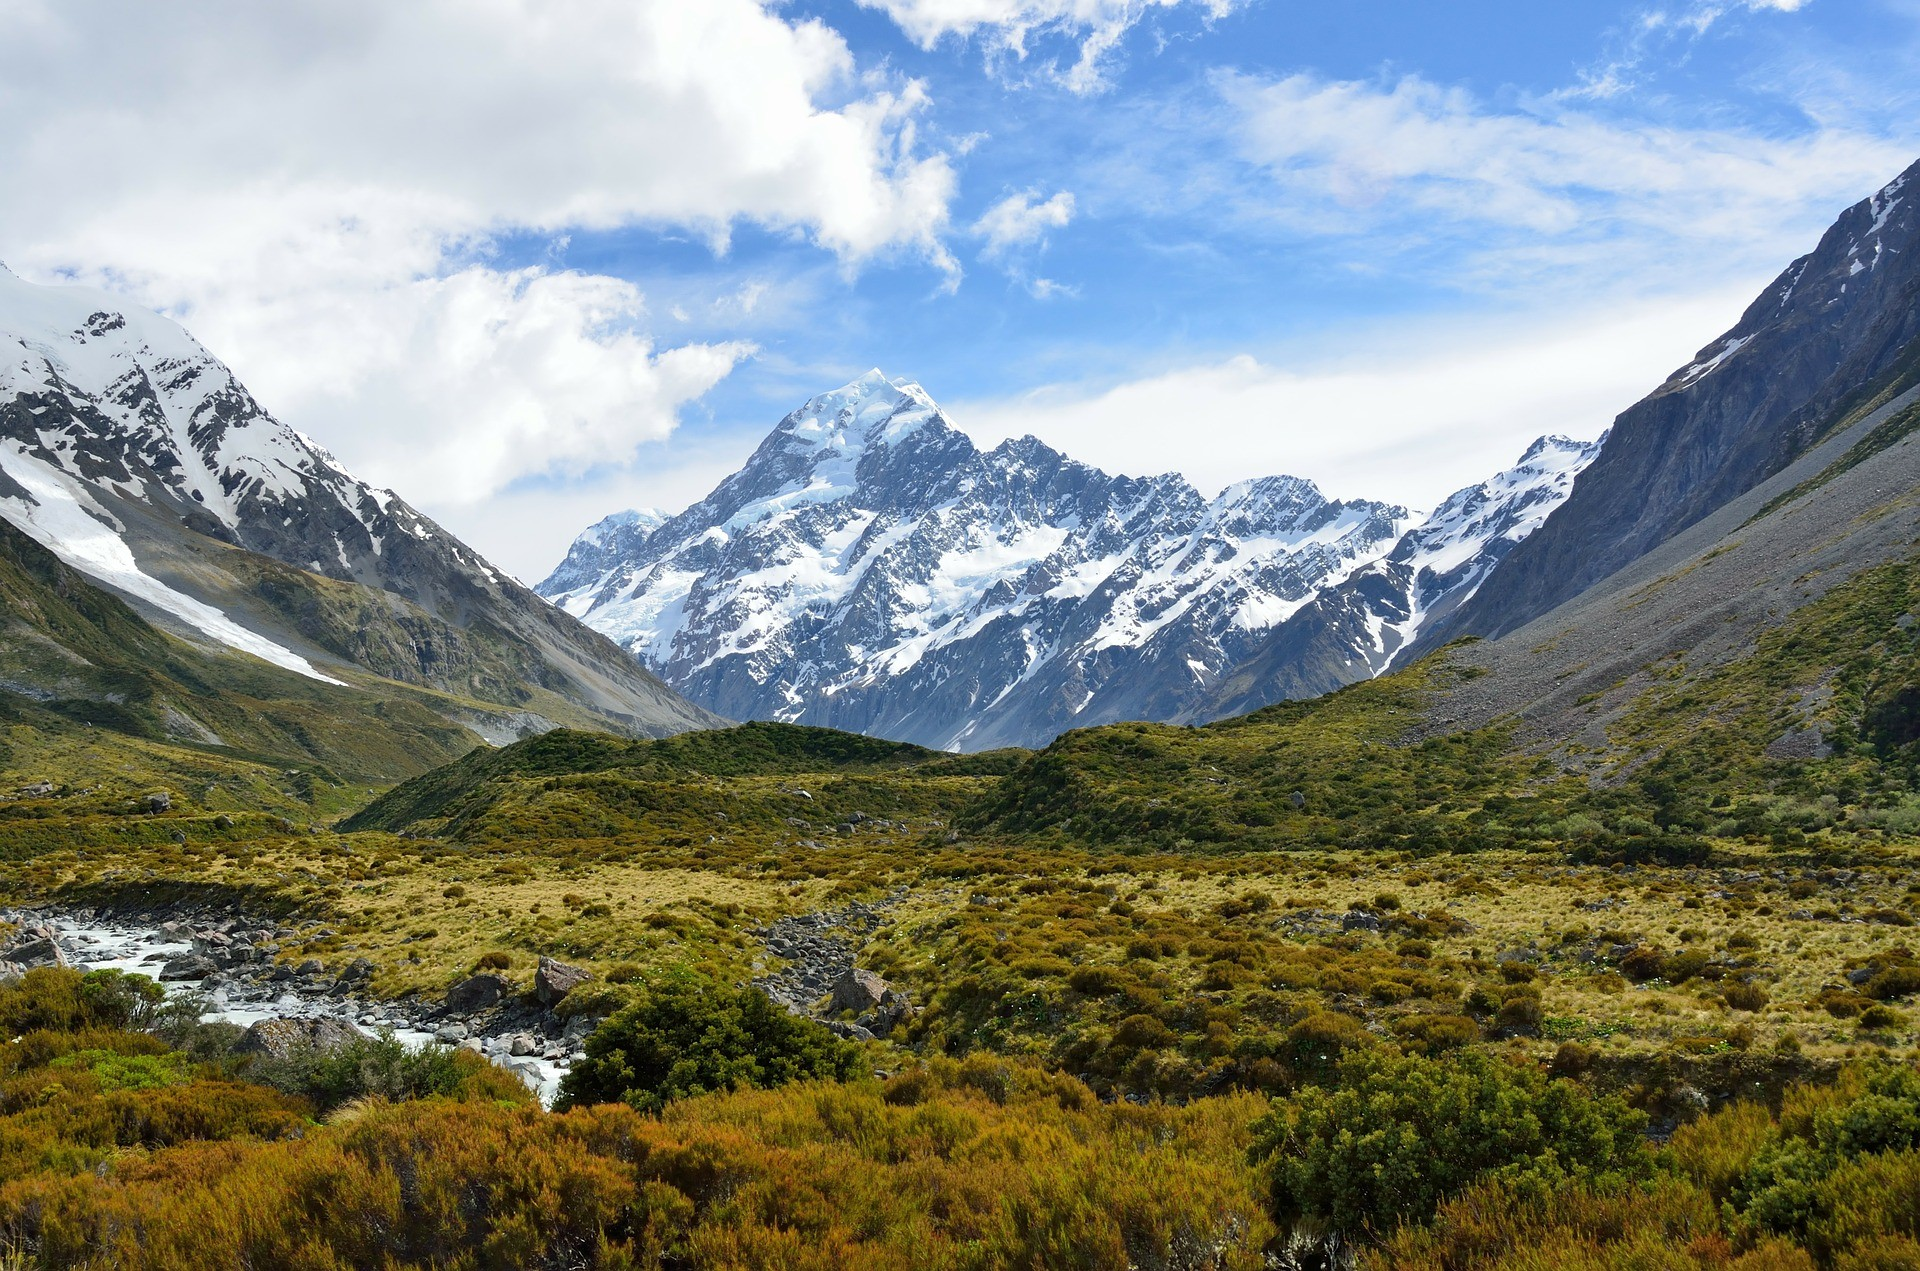 beautiful-mountainous-scenery-on-a-gorgeous-sunny-day-with-blue-skies-aoraki-mt-cook-national-park-new-zealand-bucket-list